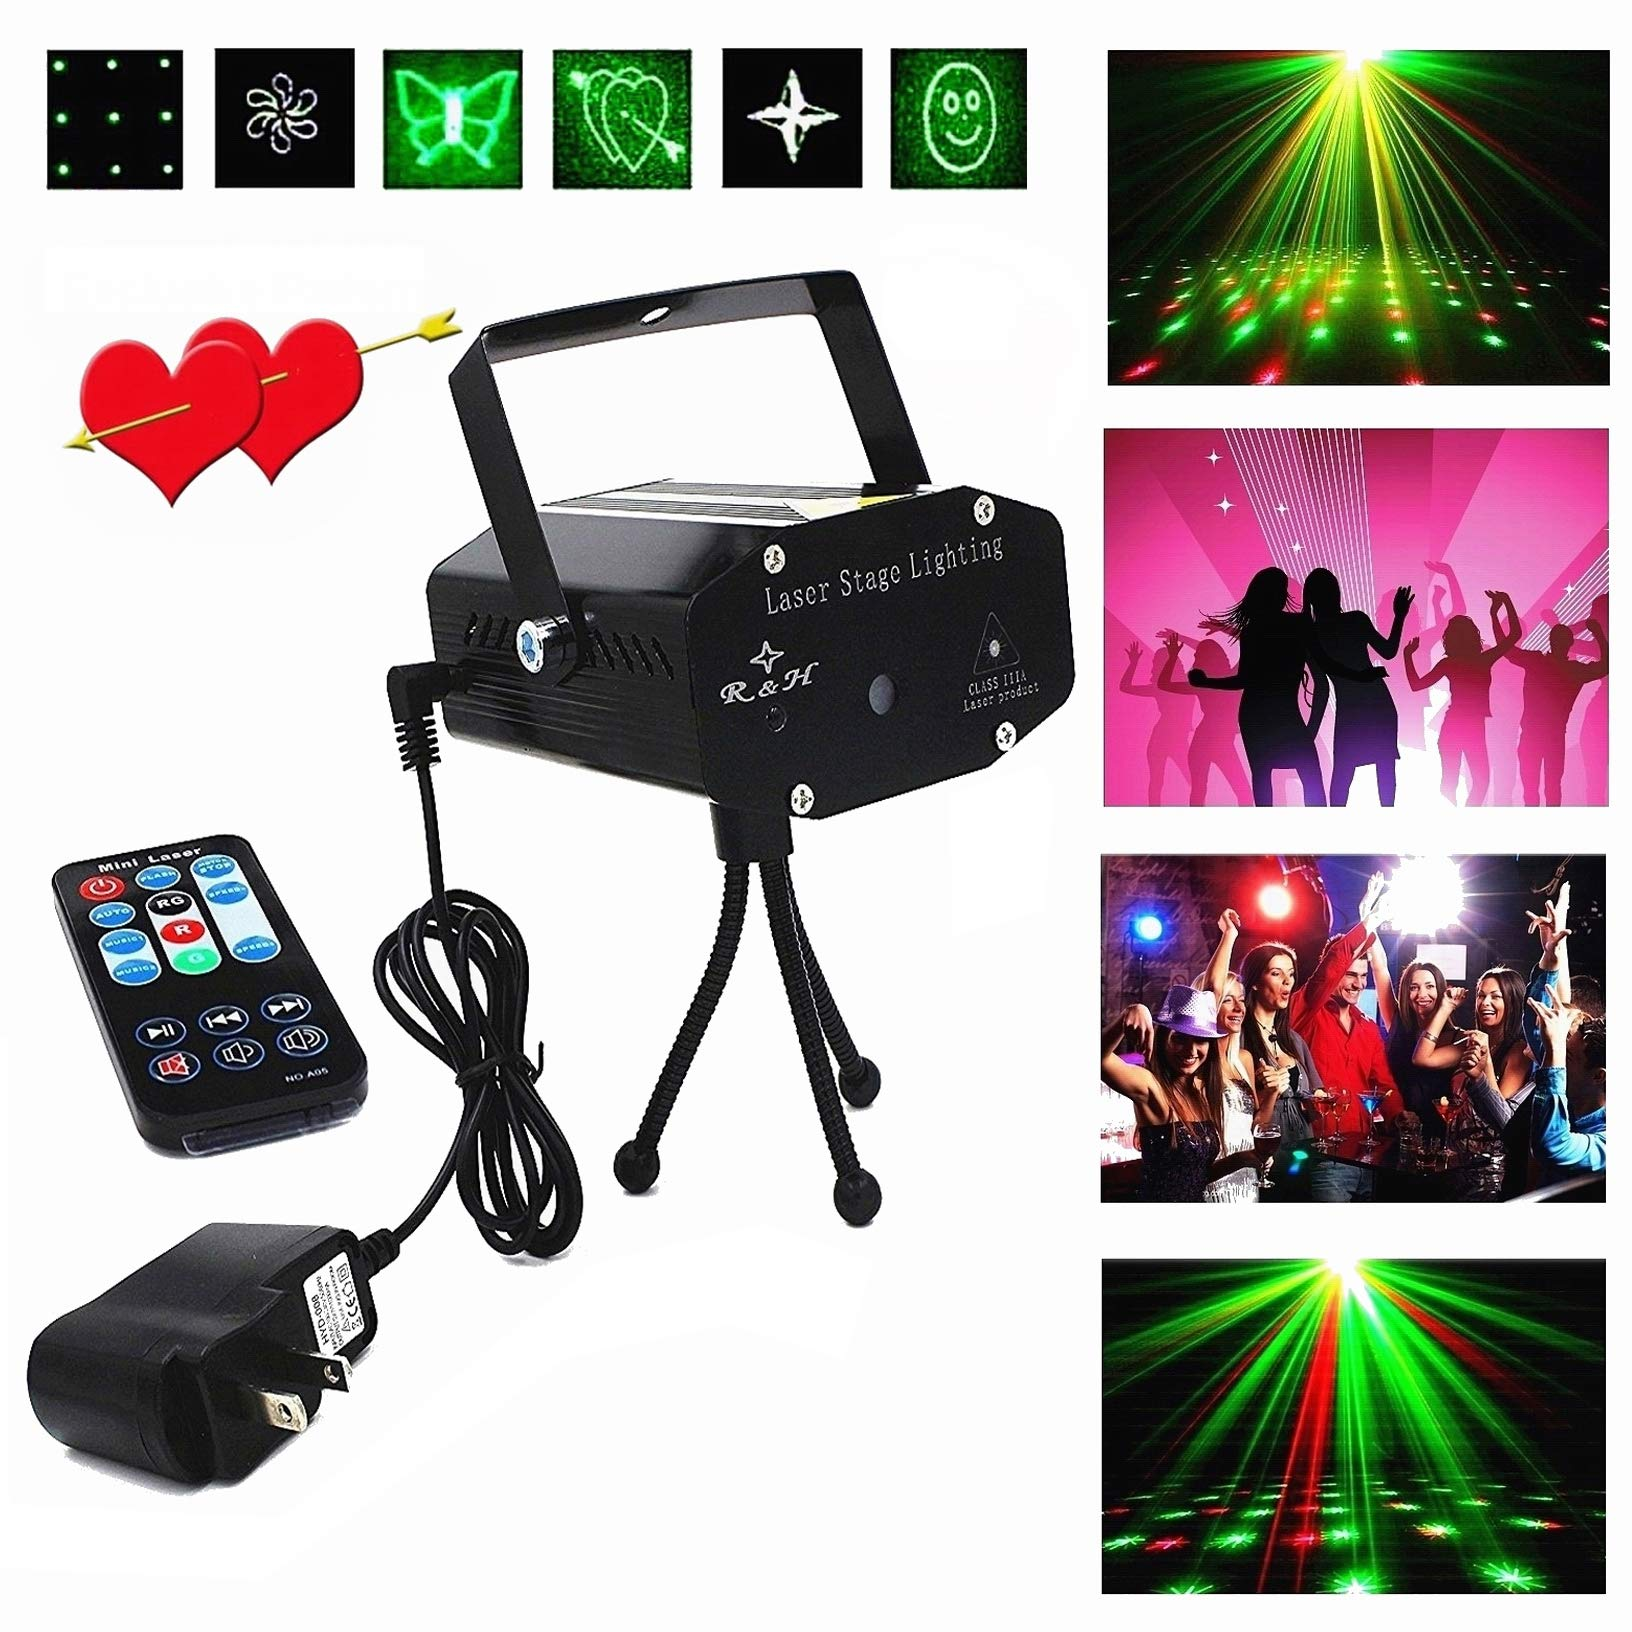 Disco Laser LED Projector Stage Lights Mini Auto Flash RGB Led Stage Lights Sound Activated for DJ Disco Party Home Show Birthday Party Wedding Stage Lighting Lights with Remote Control by R&H